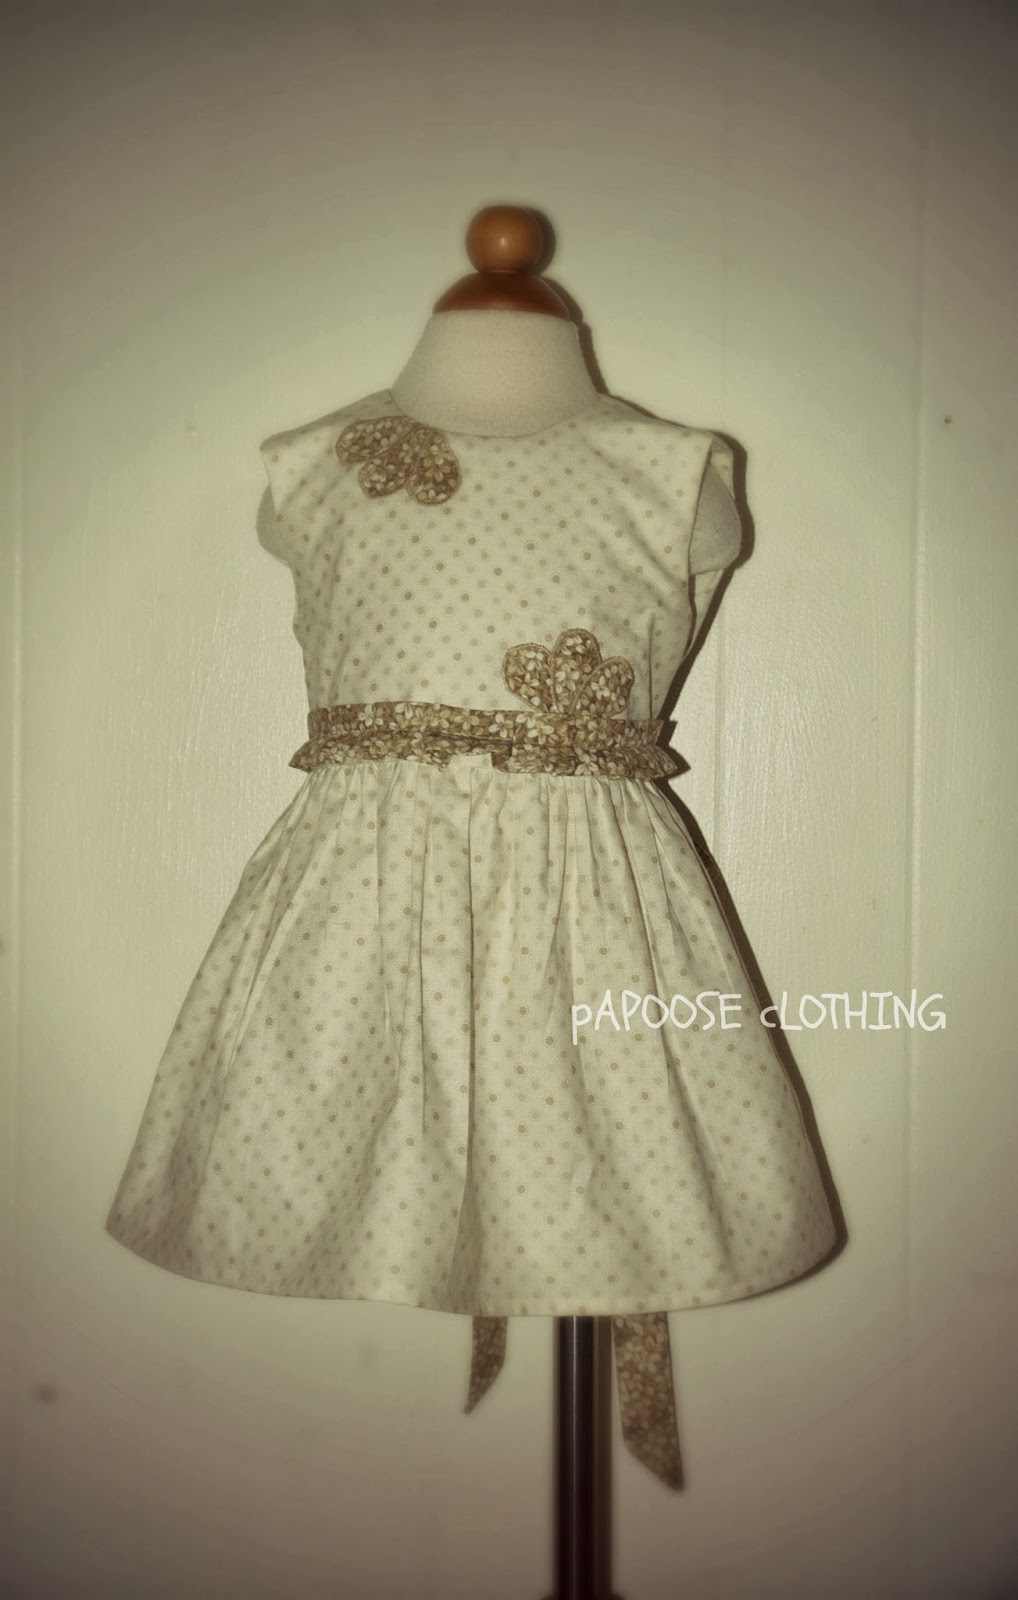 http://www.papooseclothing.com/store/p42/Natural_Sand_Polka_Dot_Magnolia_Dress.html